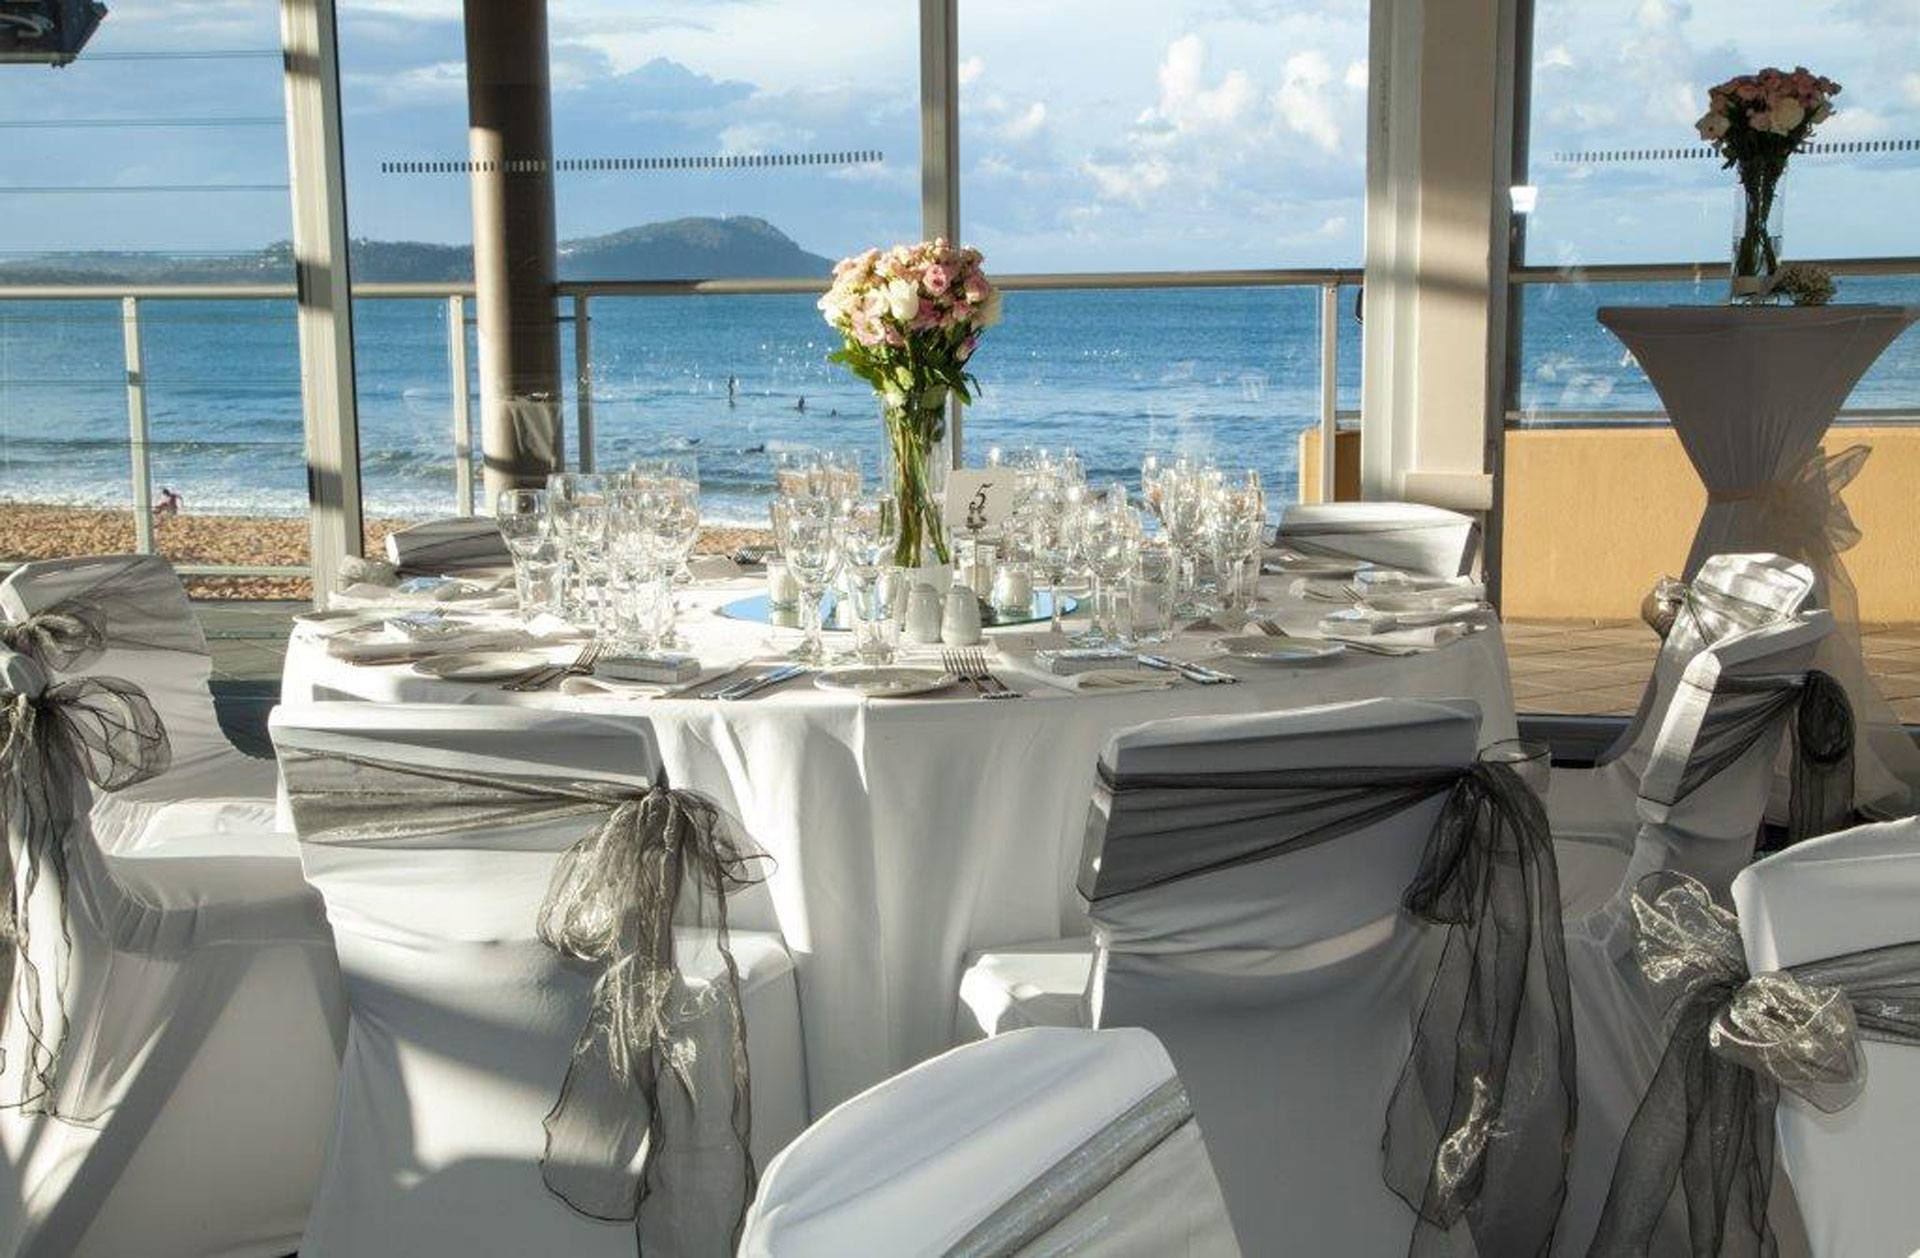 Most Sort After Venue In This Popular Holiday Destination Right On Terrigal Beach Is Perfect For Those Wanting Plenty Of Accommodation Within